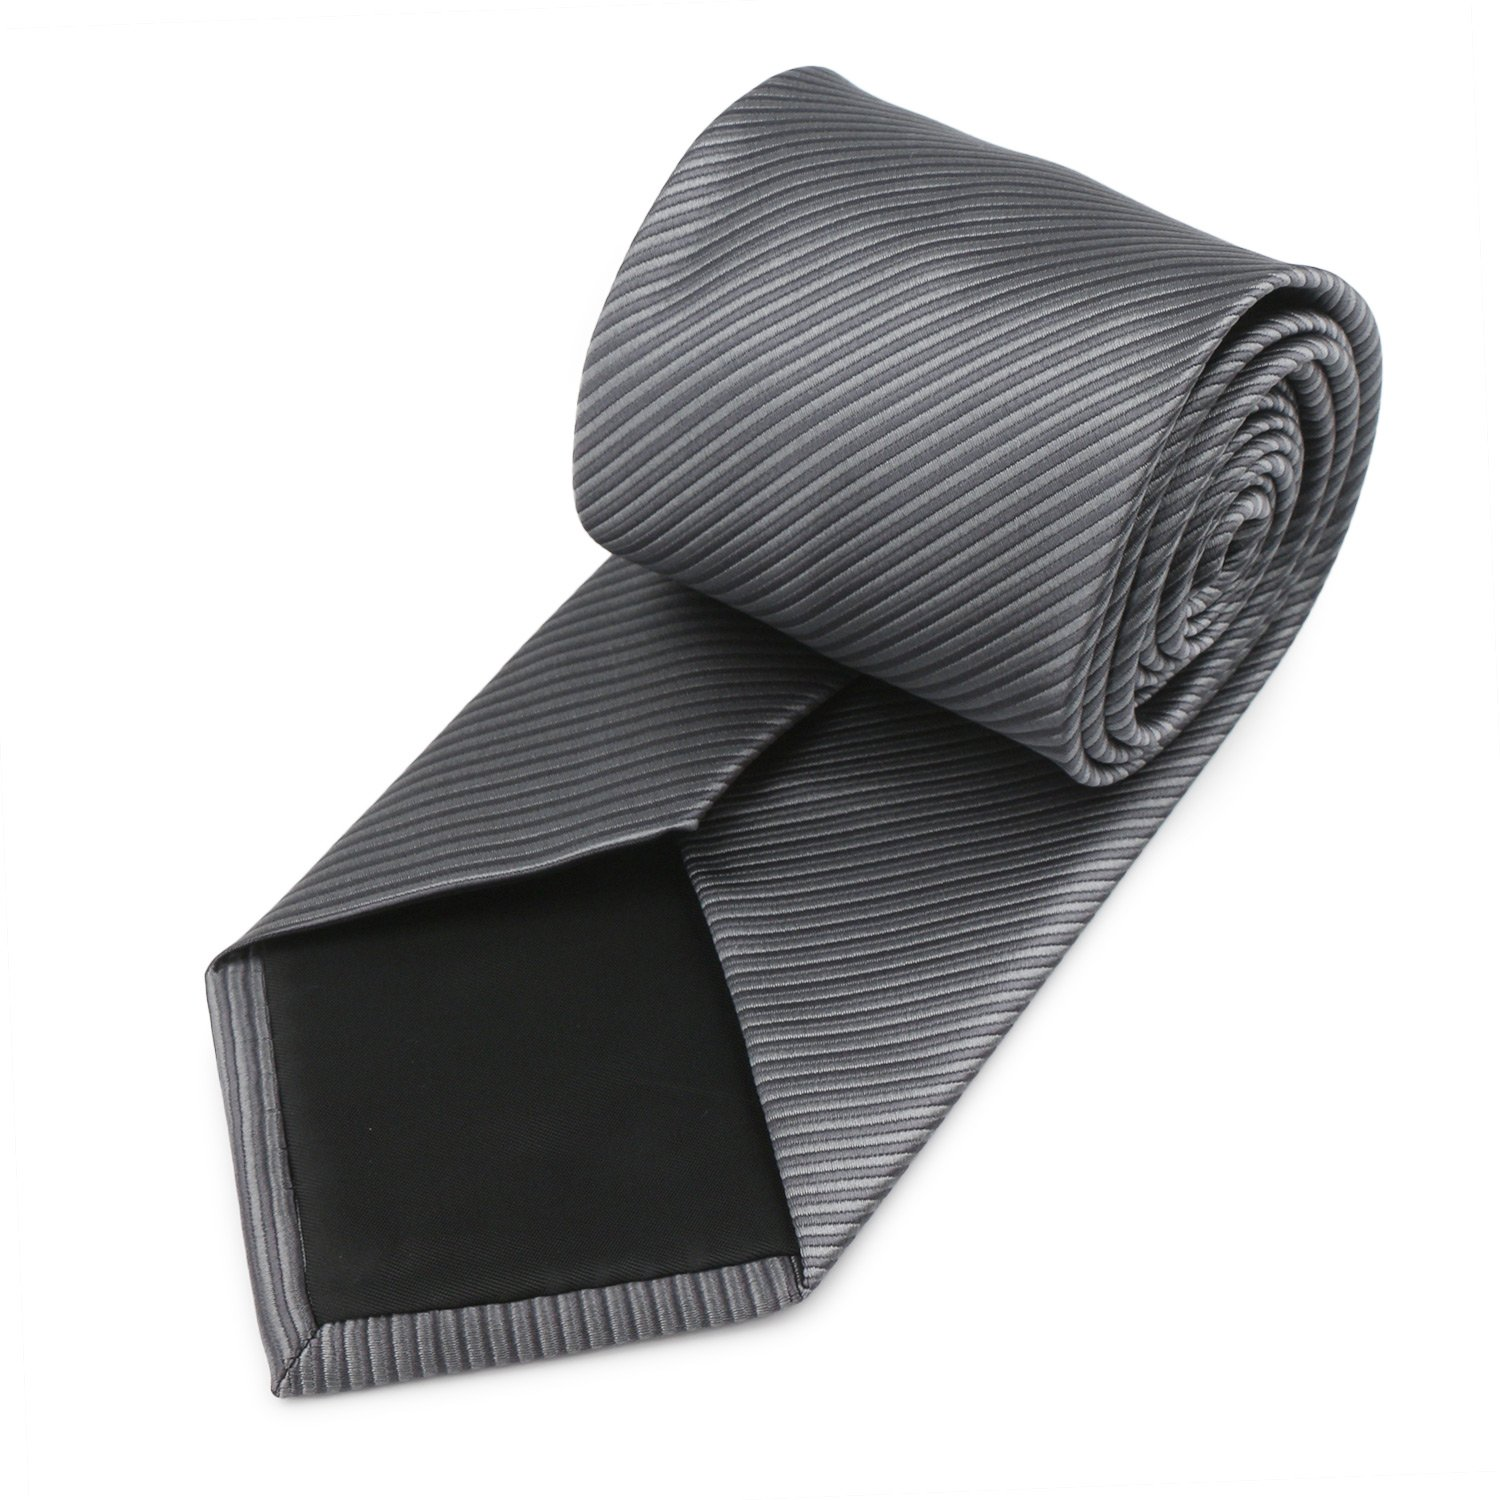 Mens Necktie Classic Striped Neckties, 54'' Long Polyester Solid Grey Neck Tie, Seasonless Formal Casual Business Necktie by Segbeauty (Image #8)